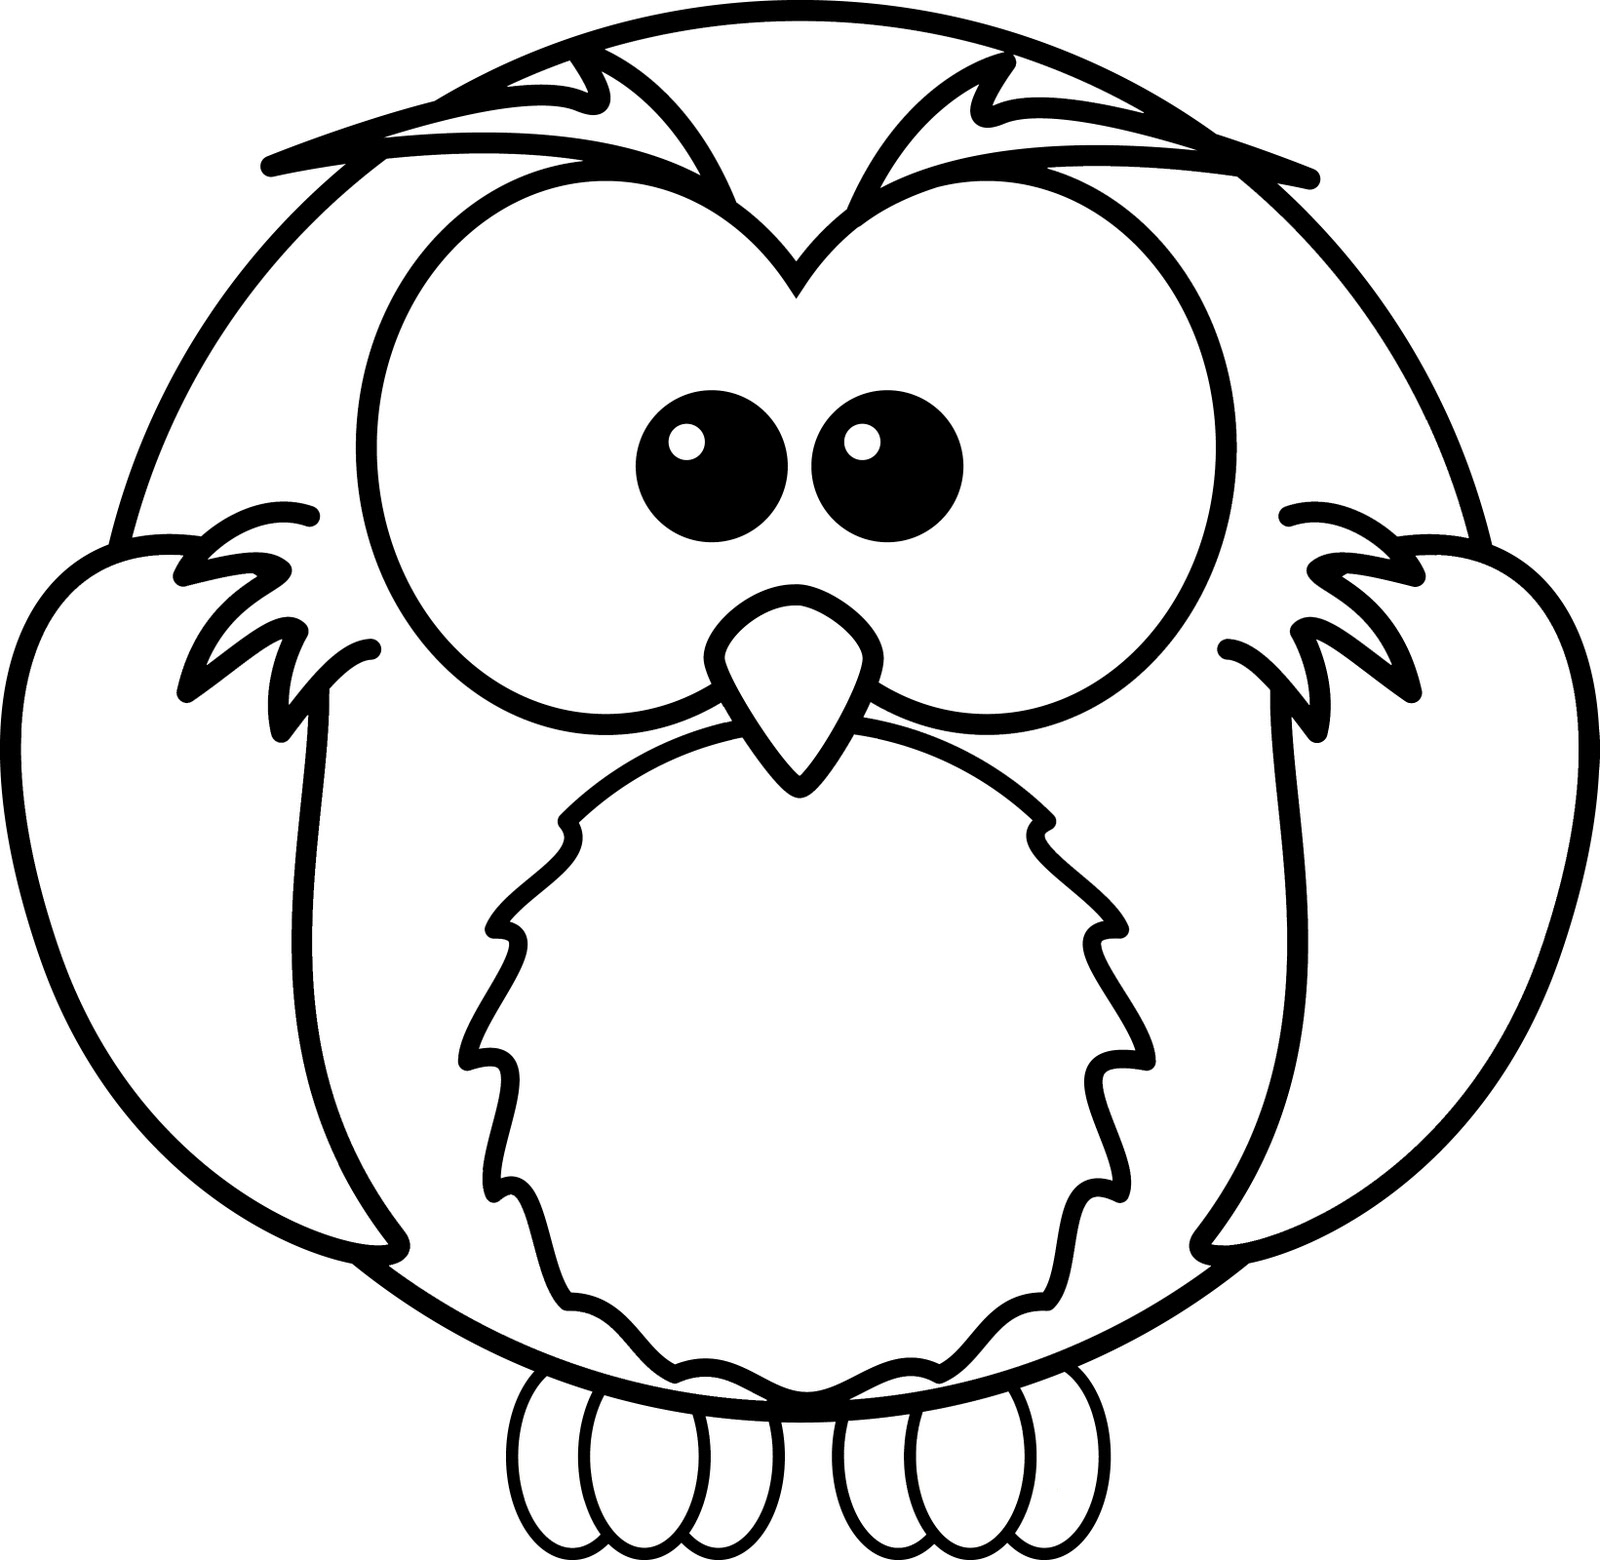 owl coloring page owl coloring pages owl coloring pages page coloring owl